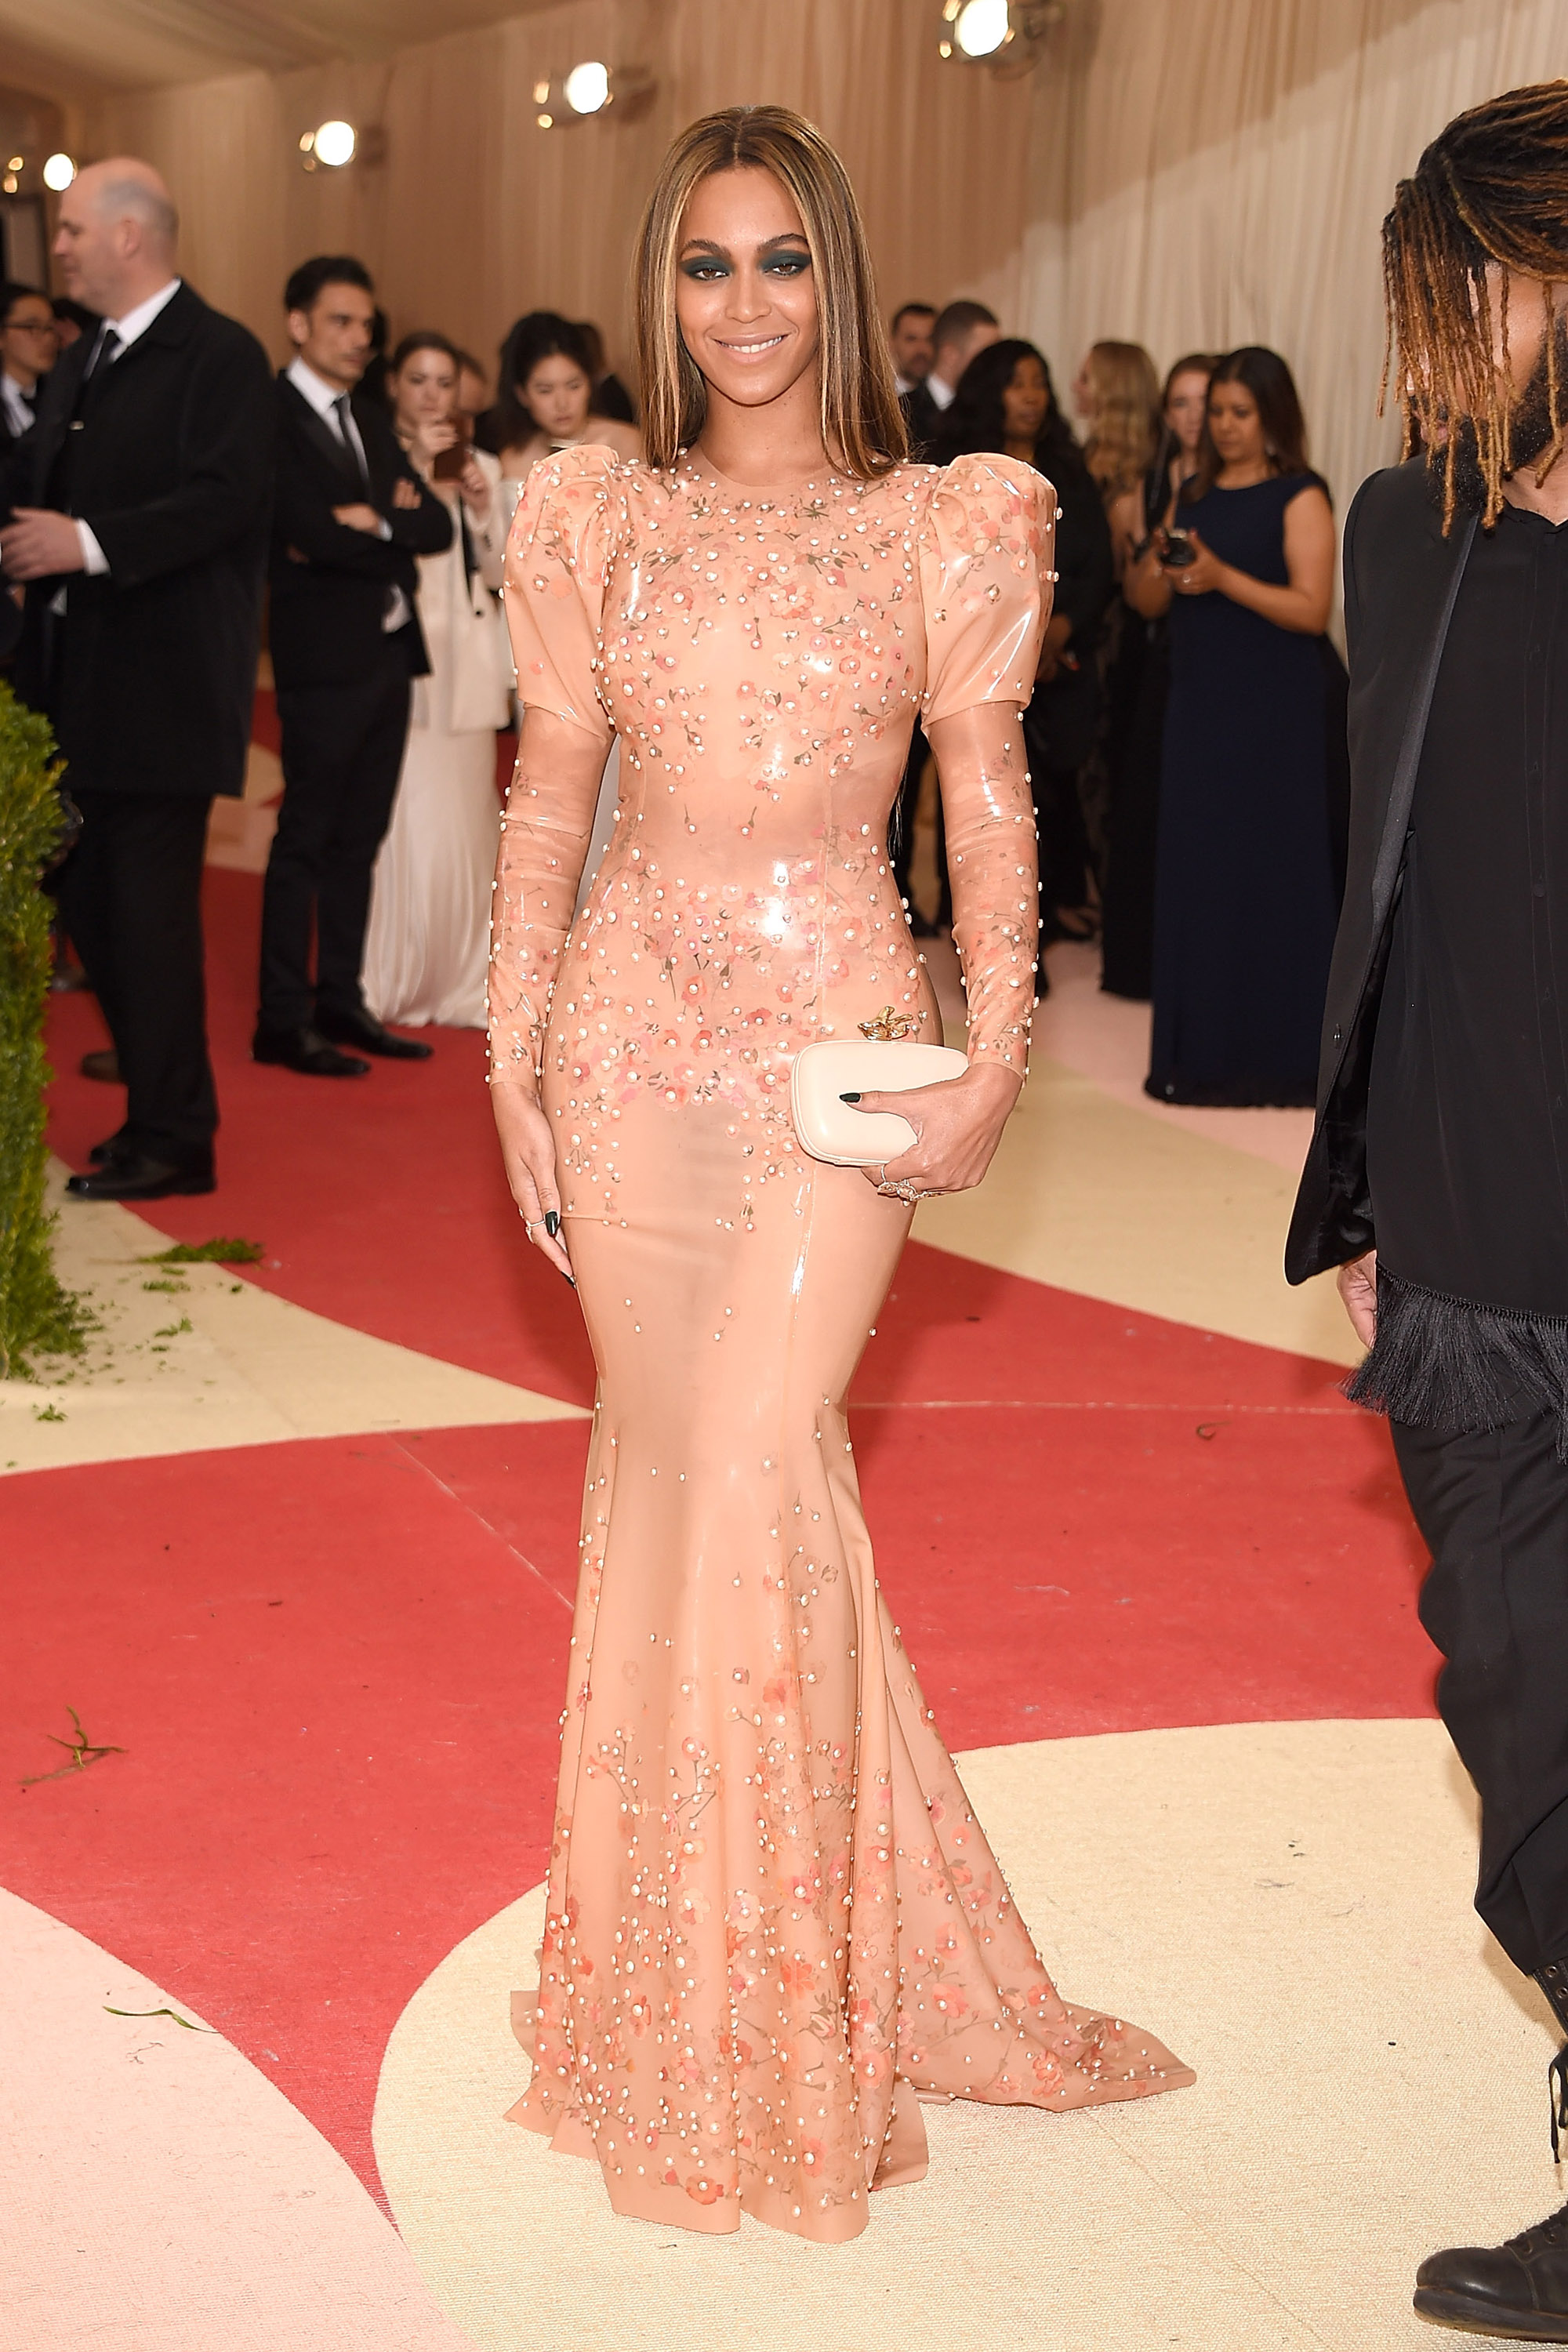 Red Carpet Dresses at Met Gala 2016 - Dresses and Gowns ... - photo #43